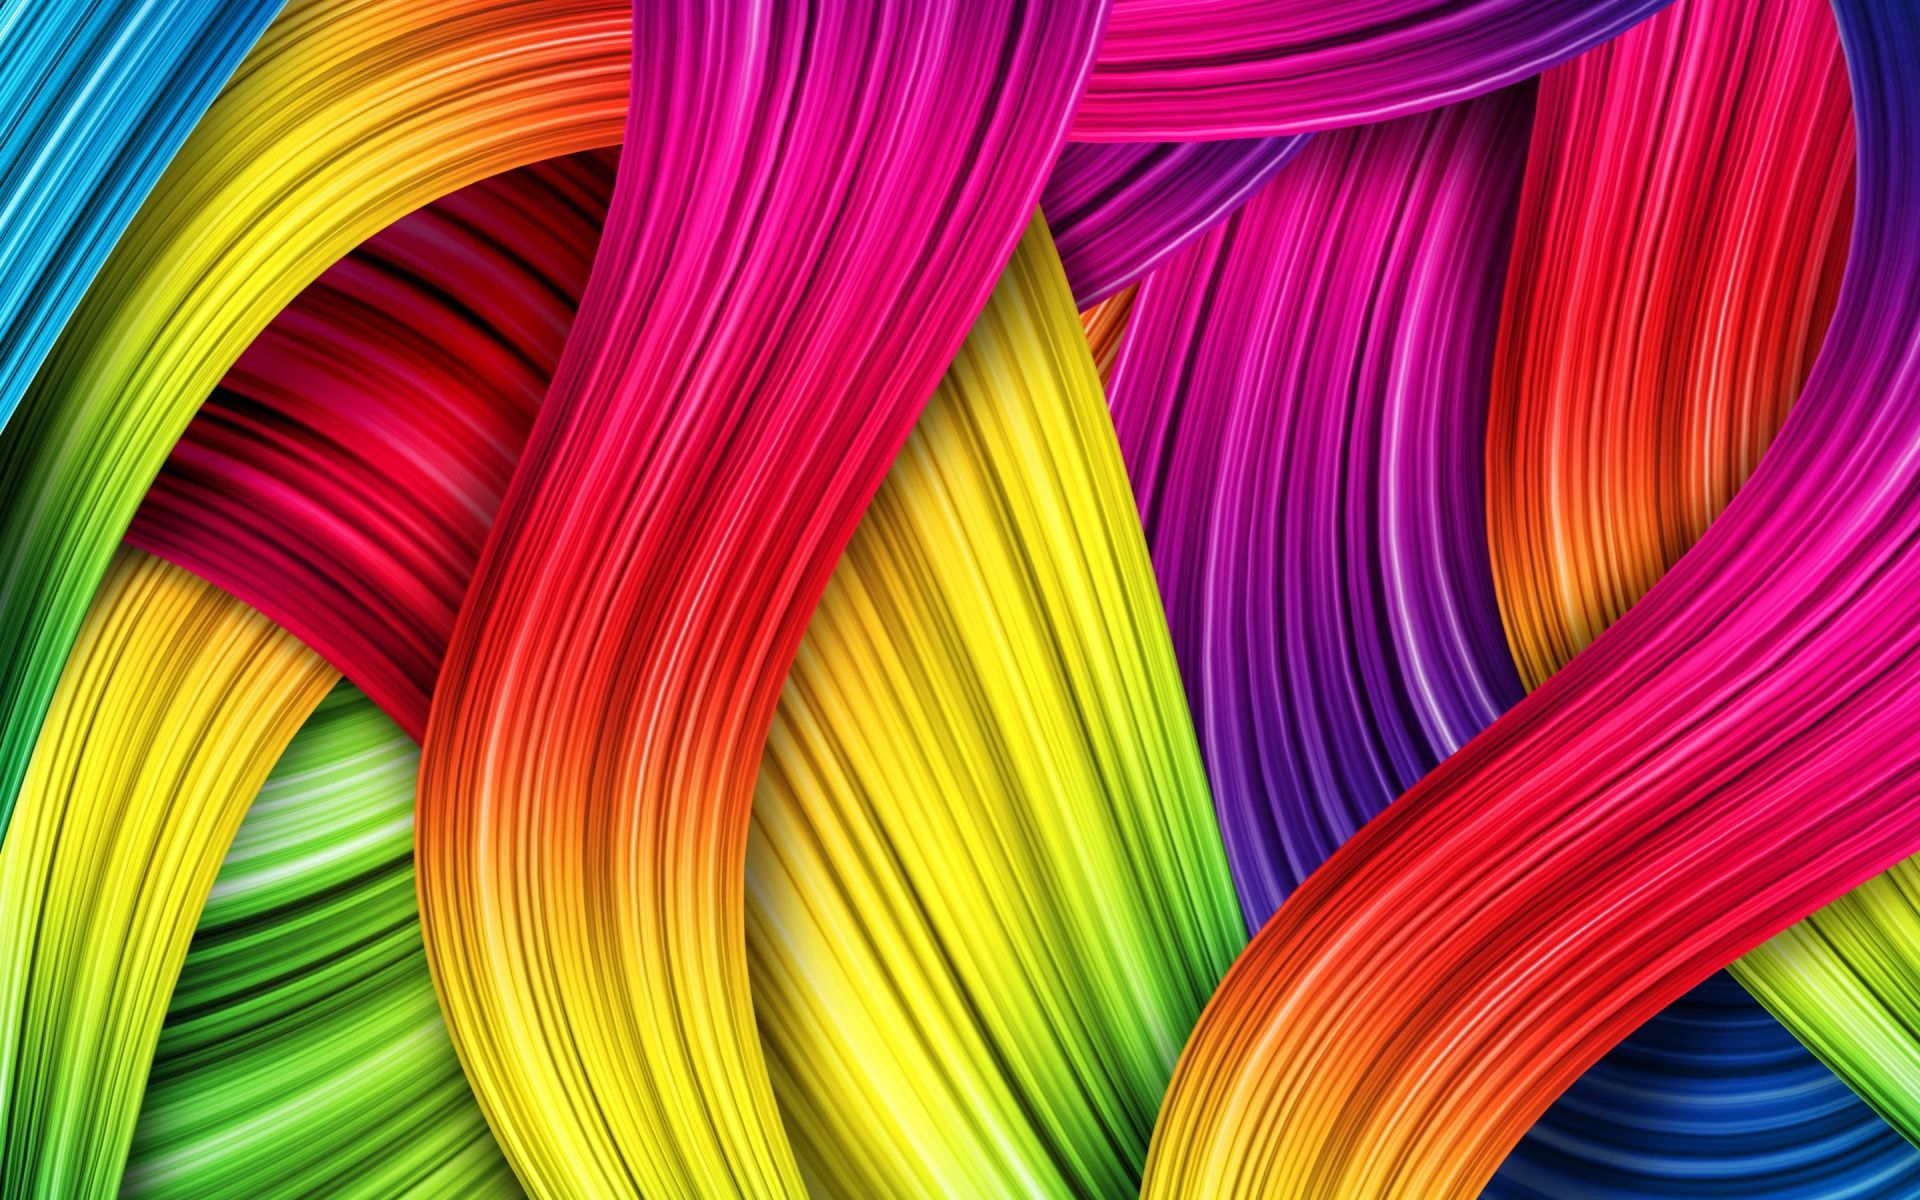 Colorful abstract art wallpaper hd widescreen 11 hd - Abstract hd widescreen wallpapers ...